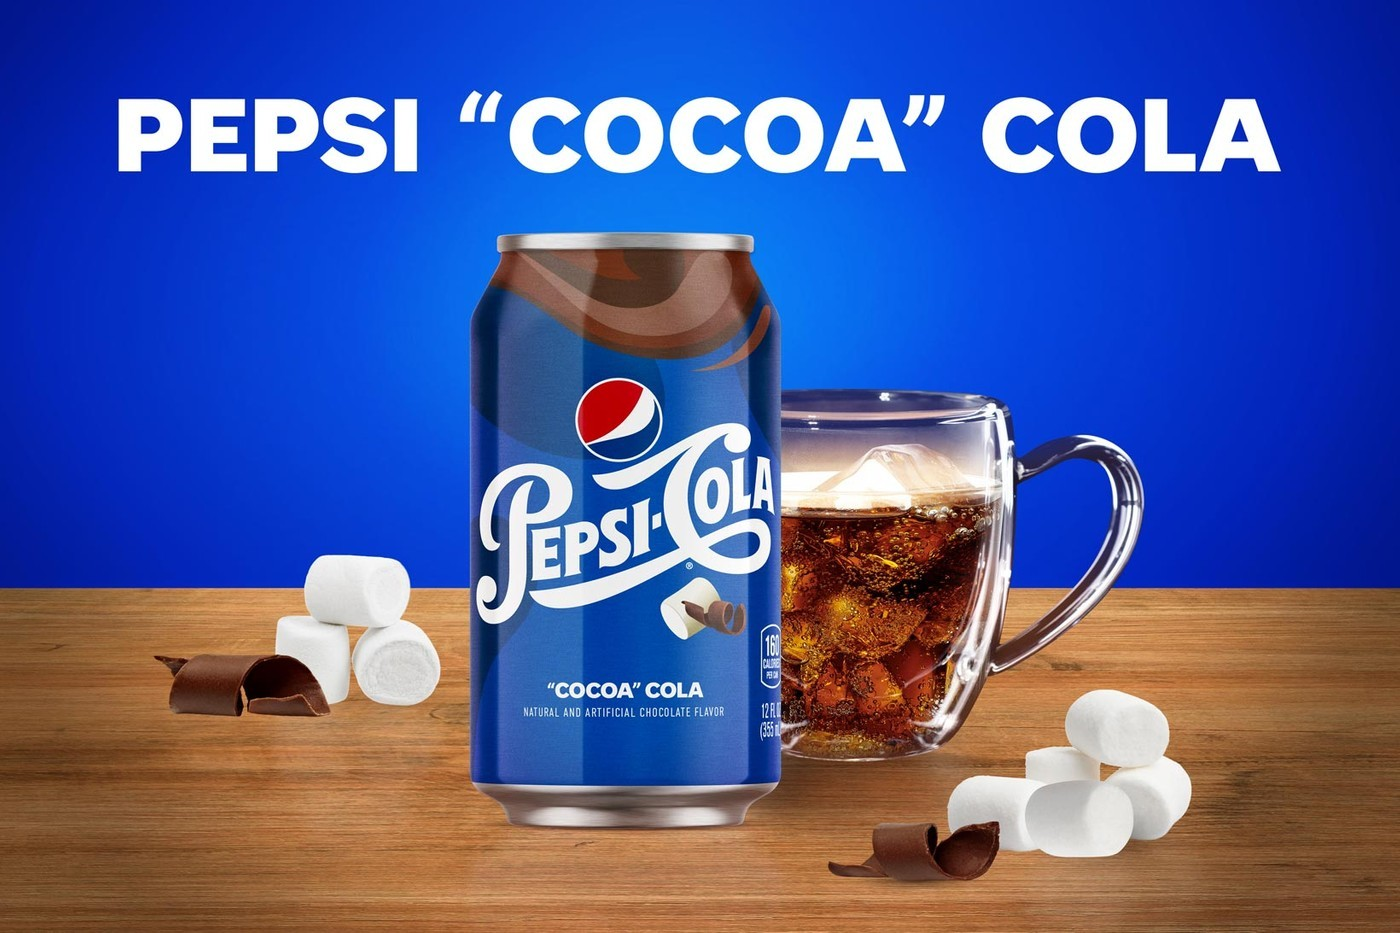 https---hypebeast.com-image-2020-12-pepsi-chocolate-marshmallow-cocoa-cola-fizzy-soft-drink-flavored-2021-release-1